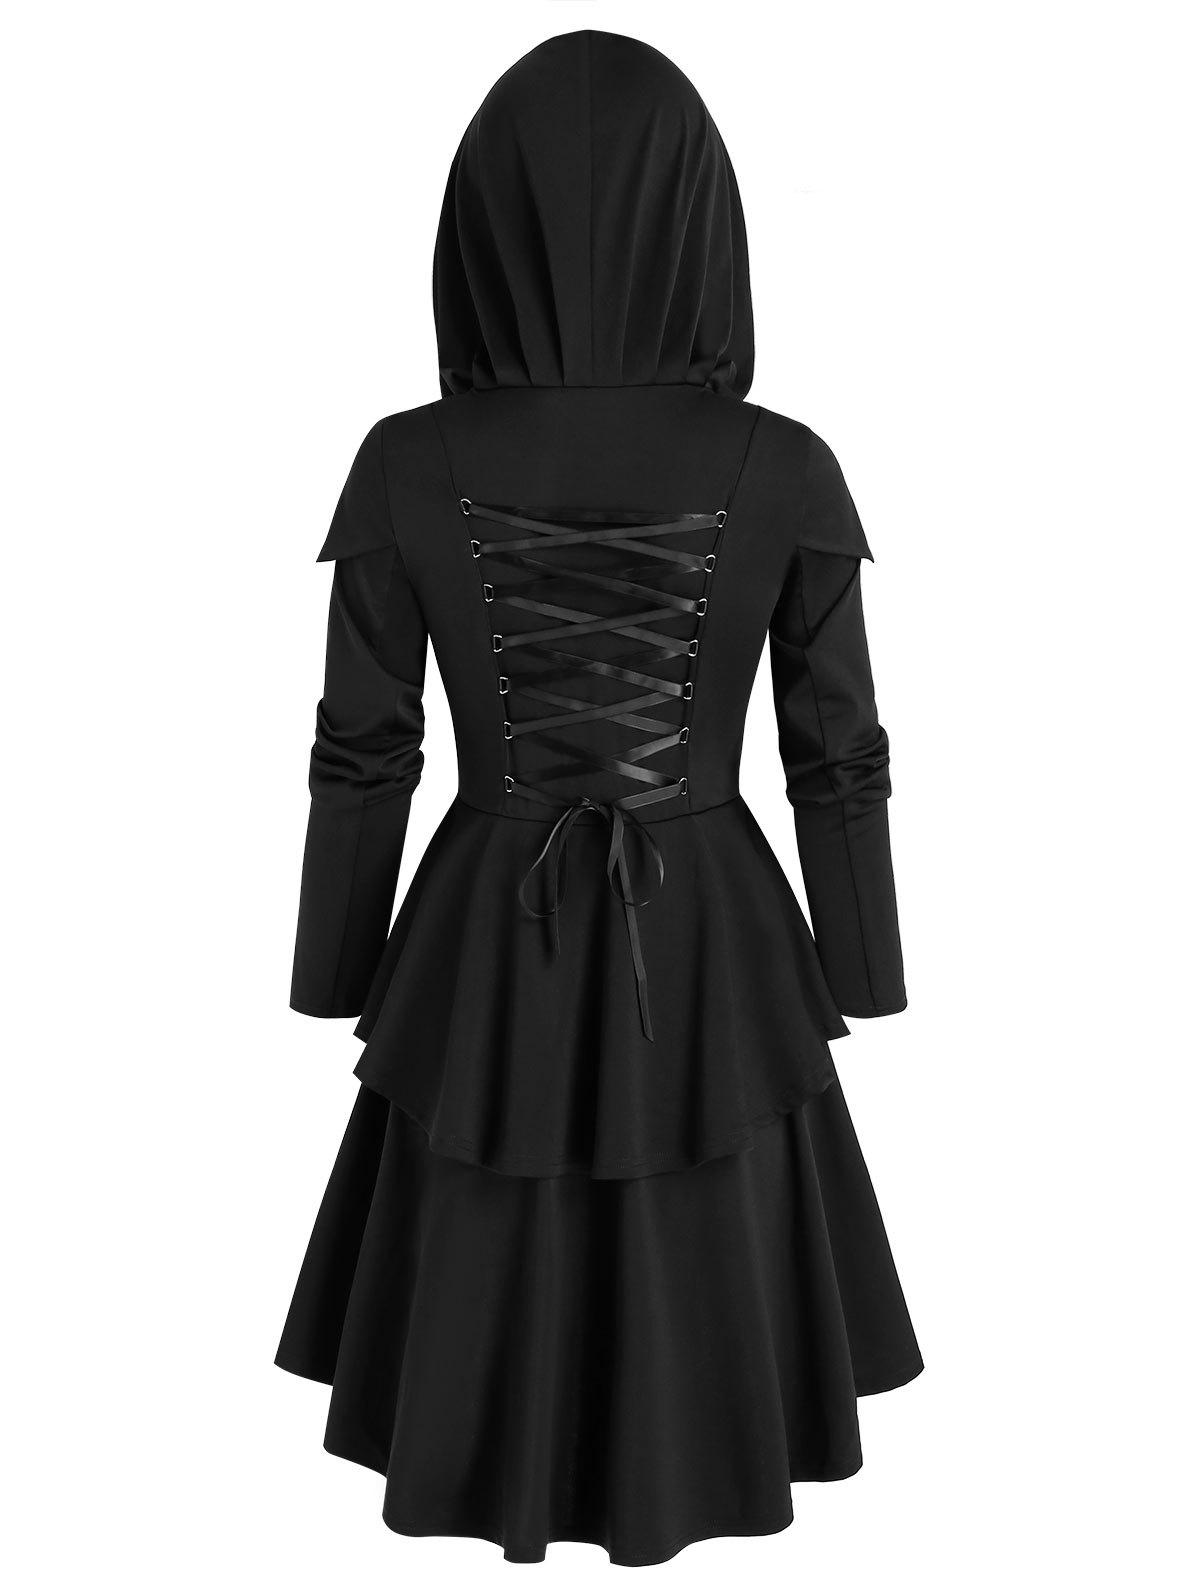 Unique Hooded Lace-up layered High Low Skirted Coat